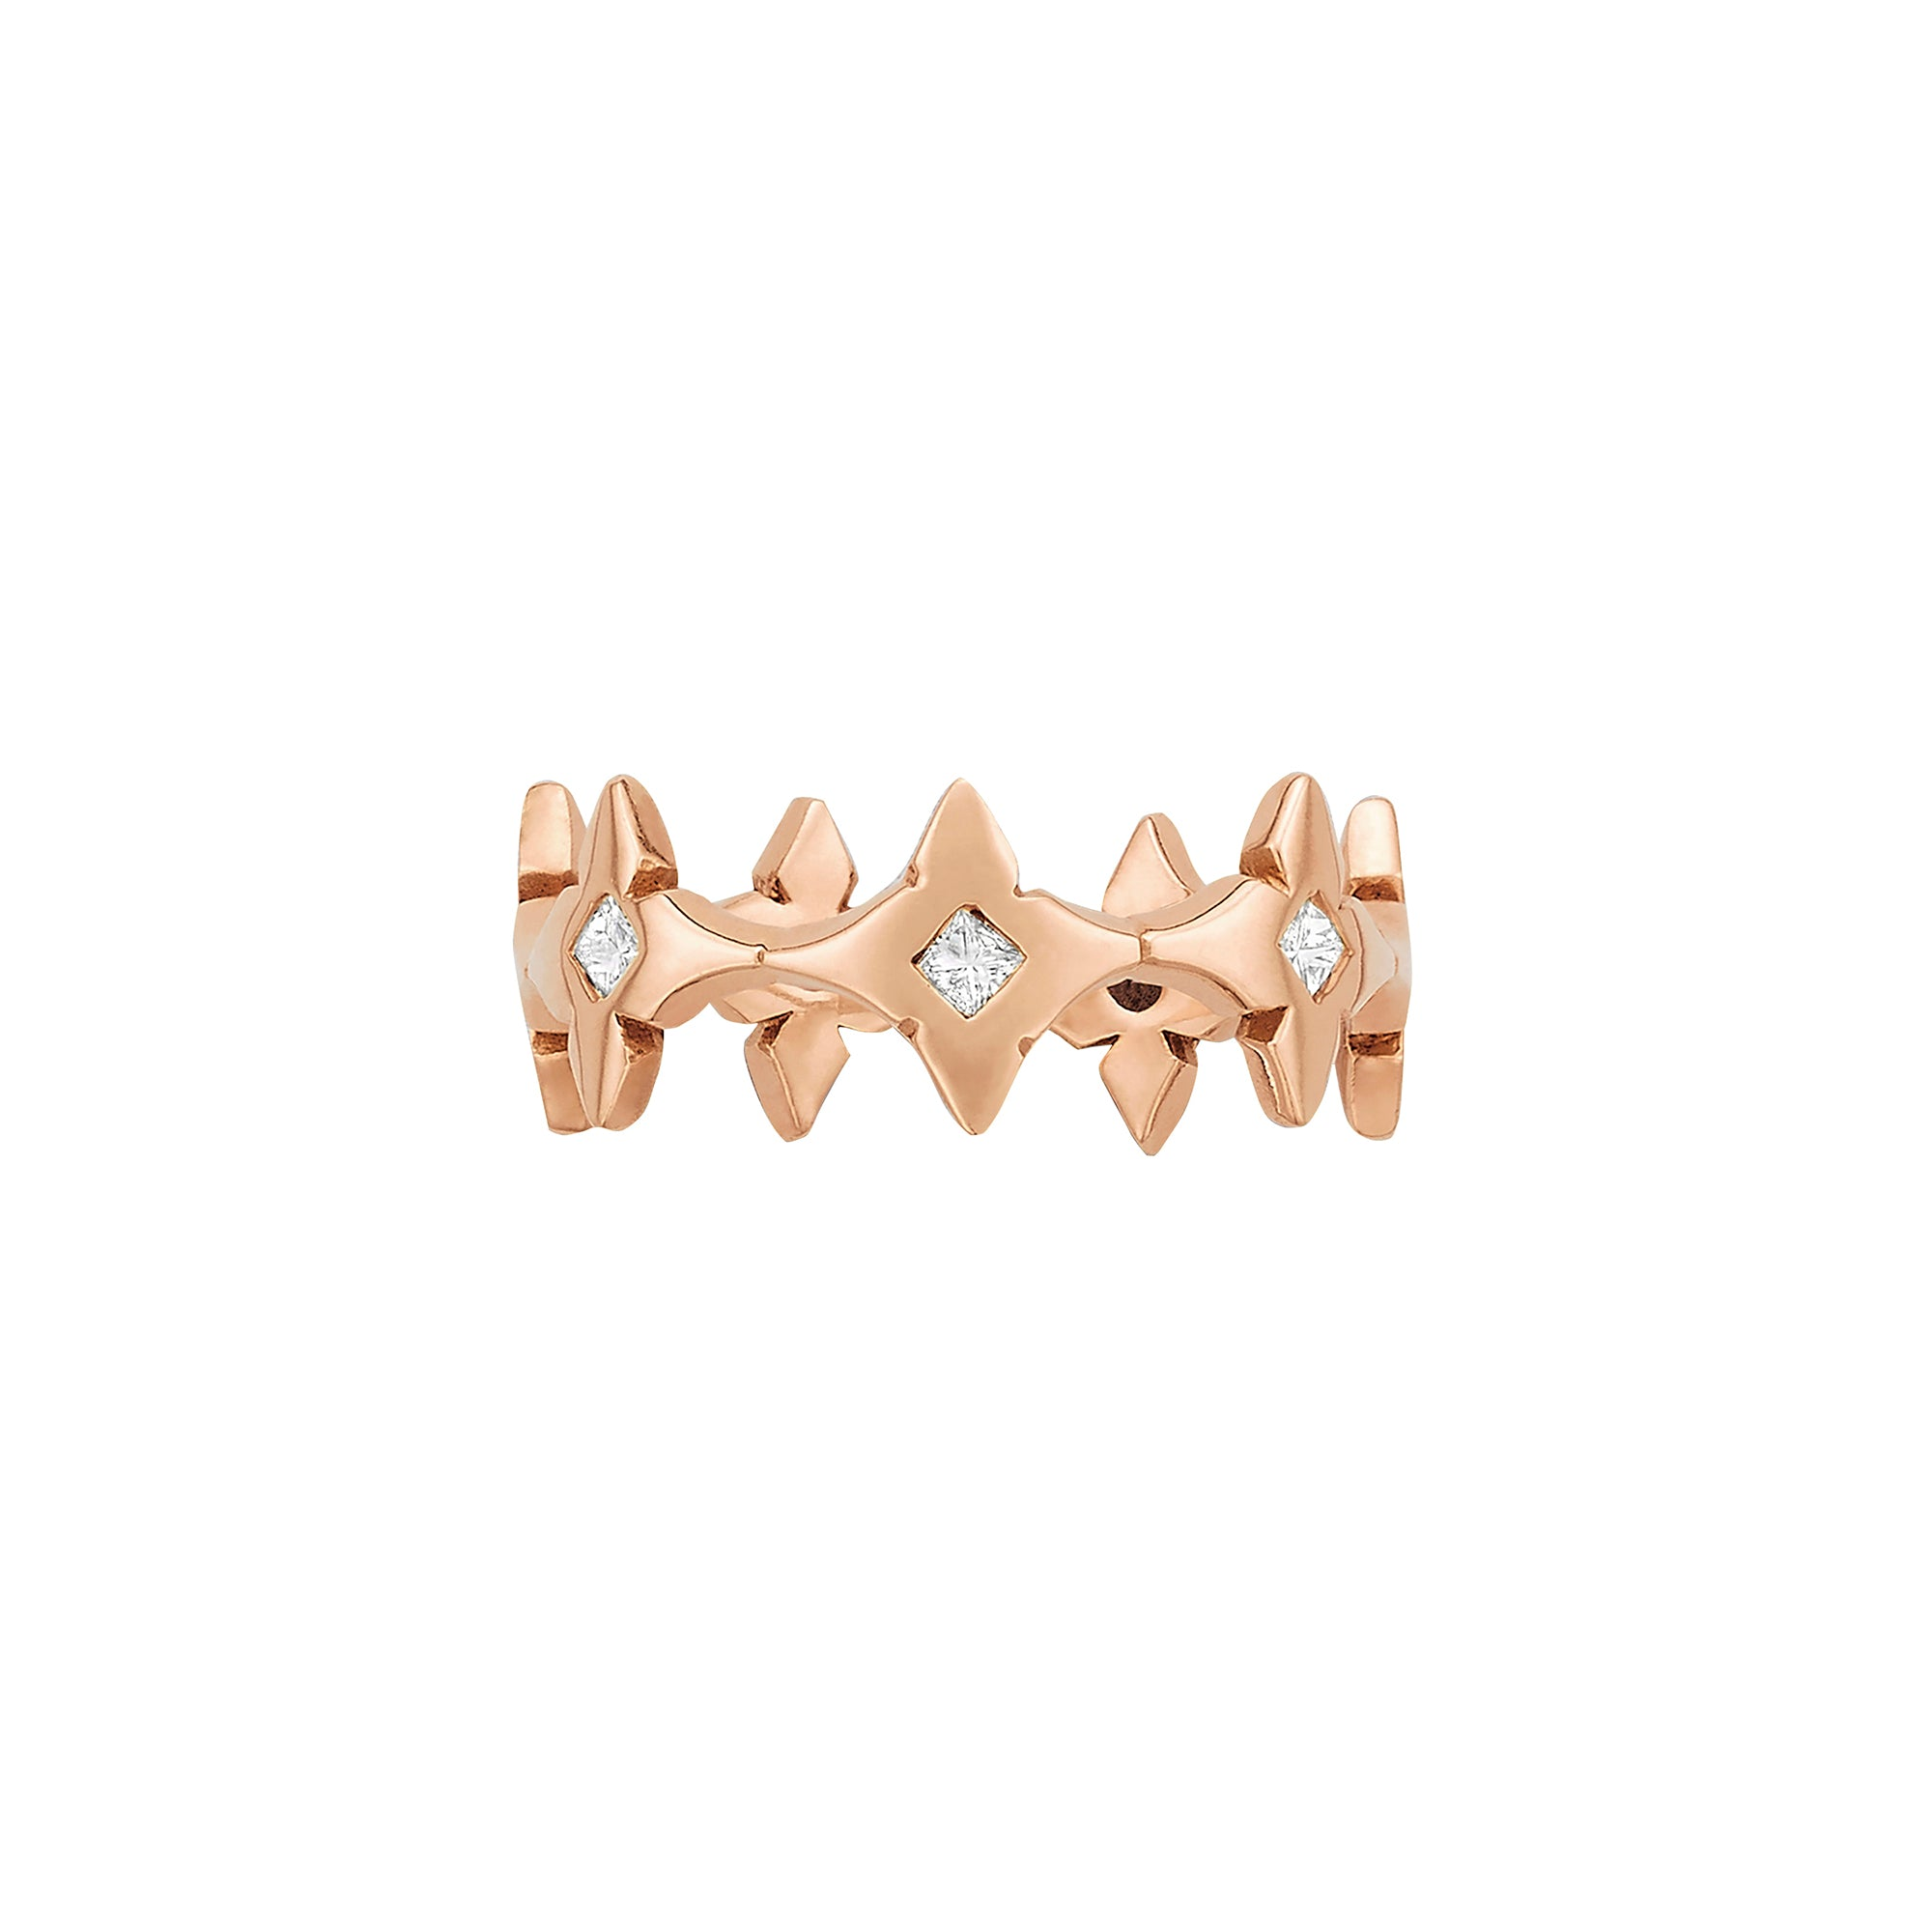 Clover Princess Eternity Ring - Ilene Joy - Rings | Broken English Jewelry